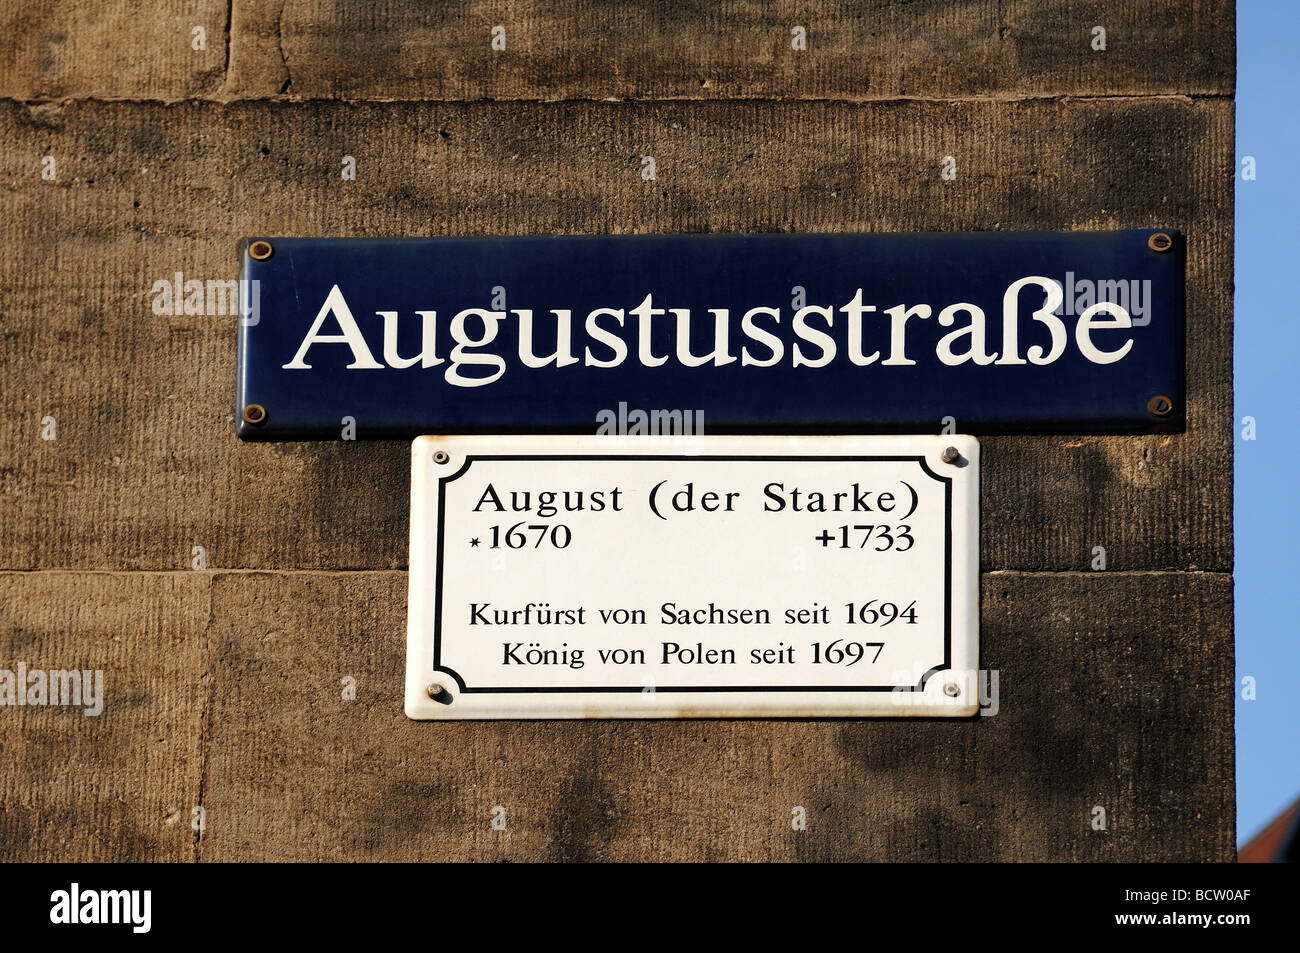 Street sign, Augustustrasse, with a plaque giving information about the street name, Dresden, Saxony, Germany, Europe - Stock Image